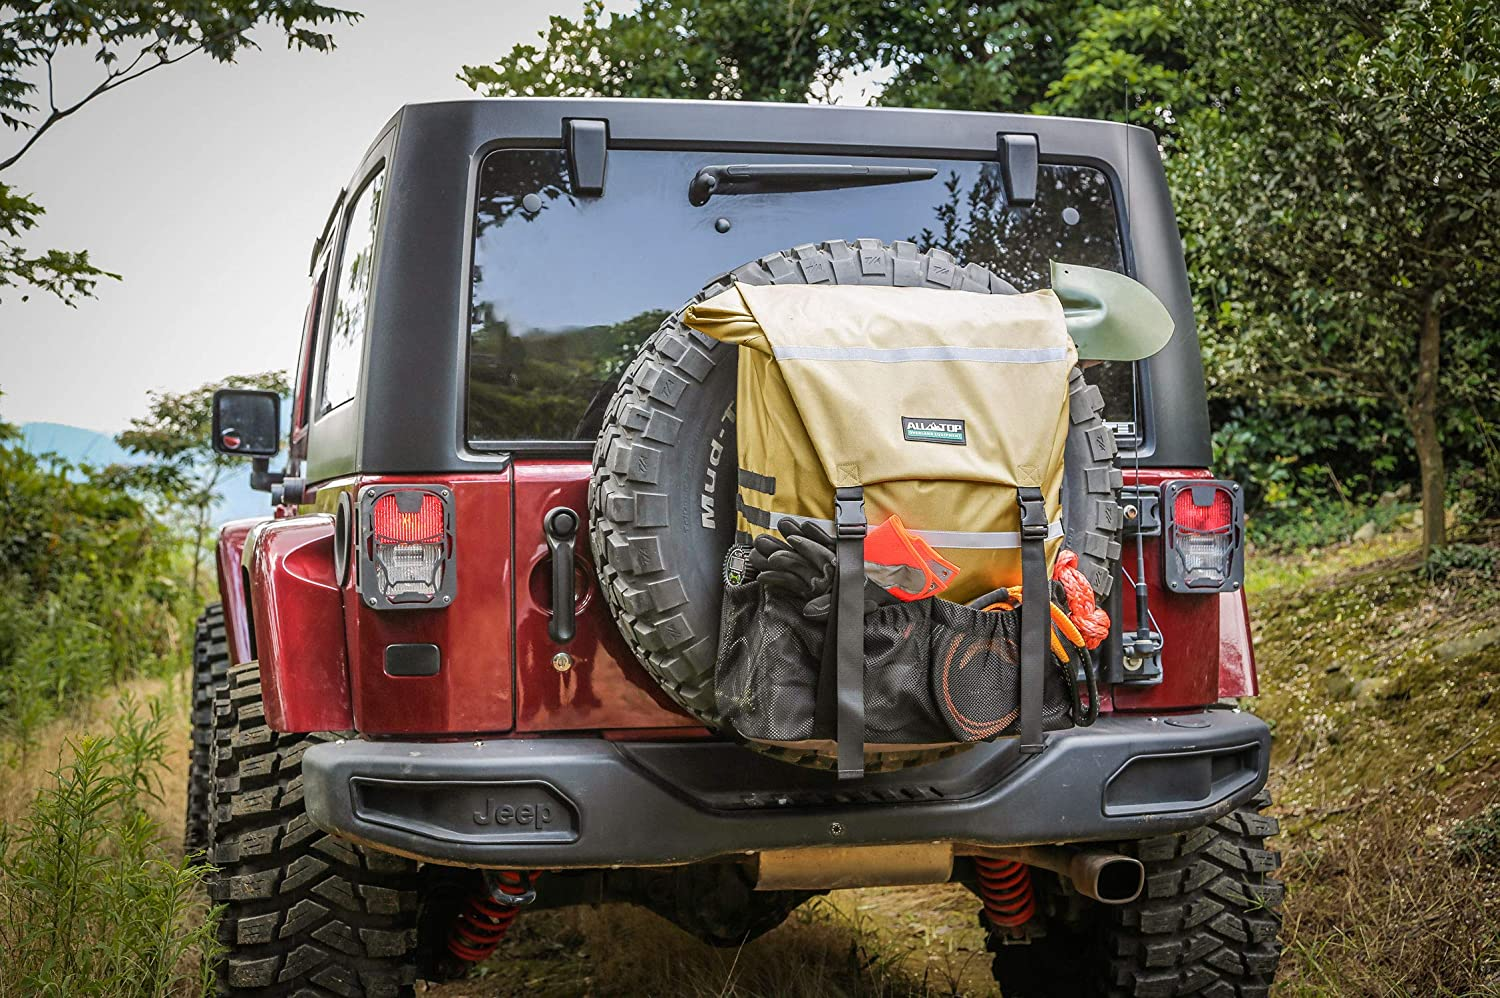 Fit up to 40 Tire - Tool /& Gear Organizer for Outdoor Off-Road Expedition Yellow Tan ALL-TOP Overland Series Spare Tire Trash Bag